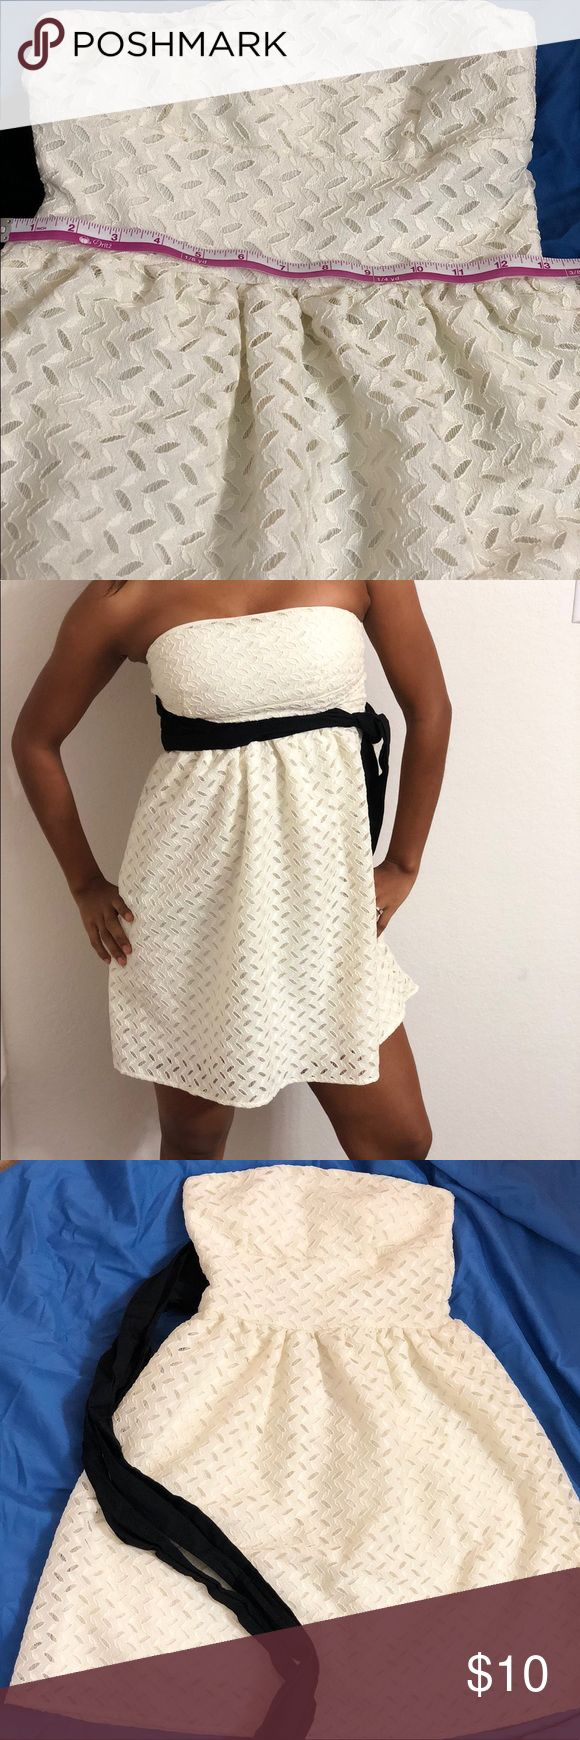 Wet  seal white dress, size S Wet  Seal white short dress, preowned. Please look carefully at all the pictures Wet Seal Dresses Strapless